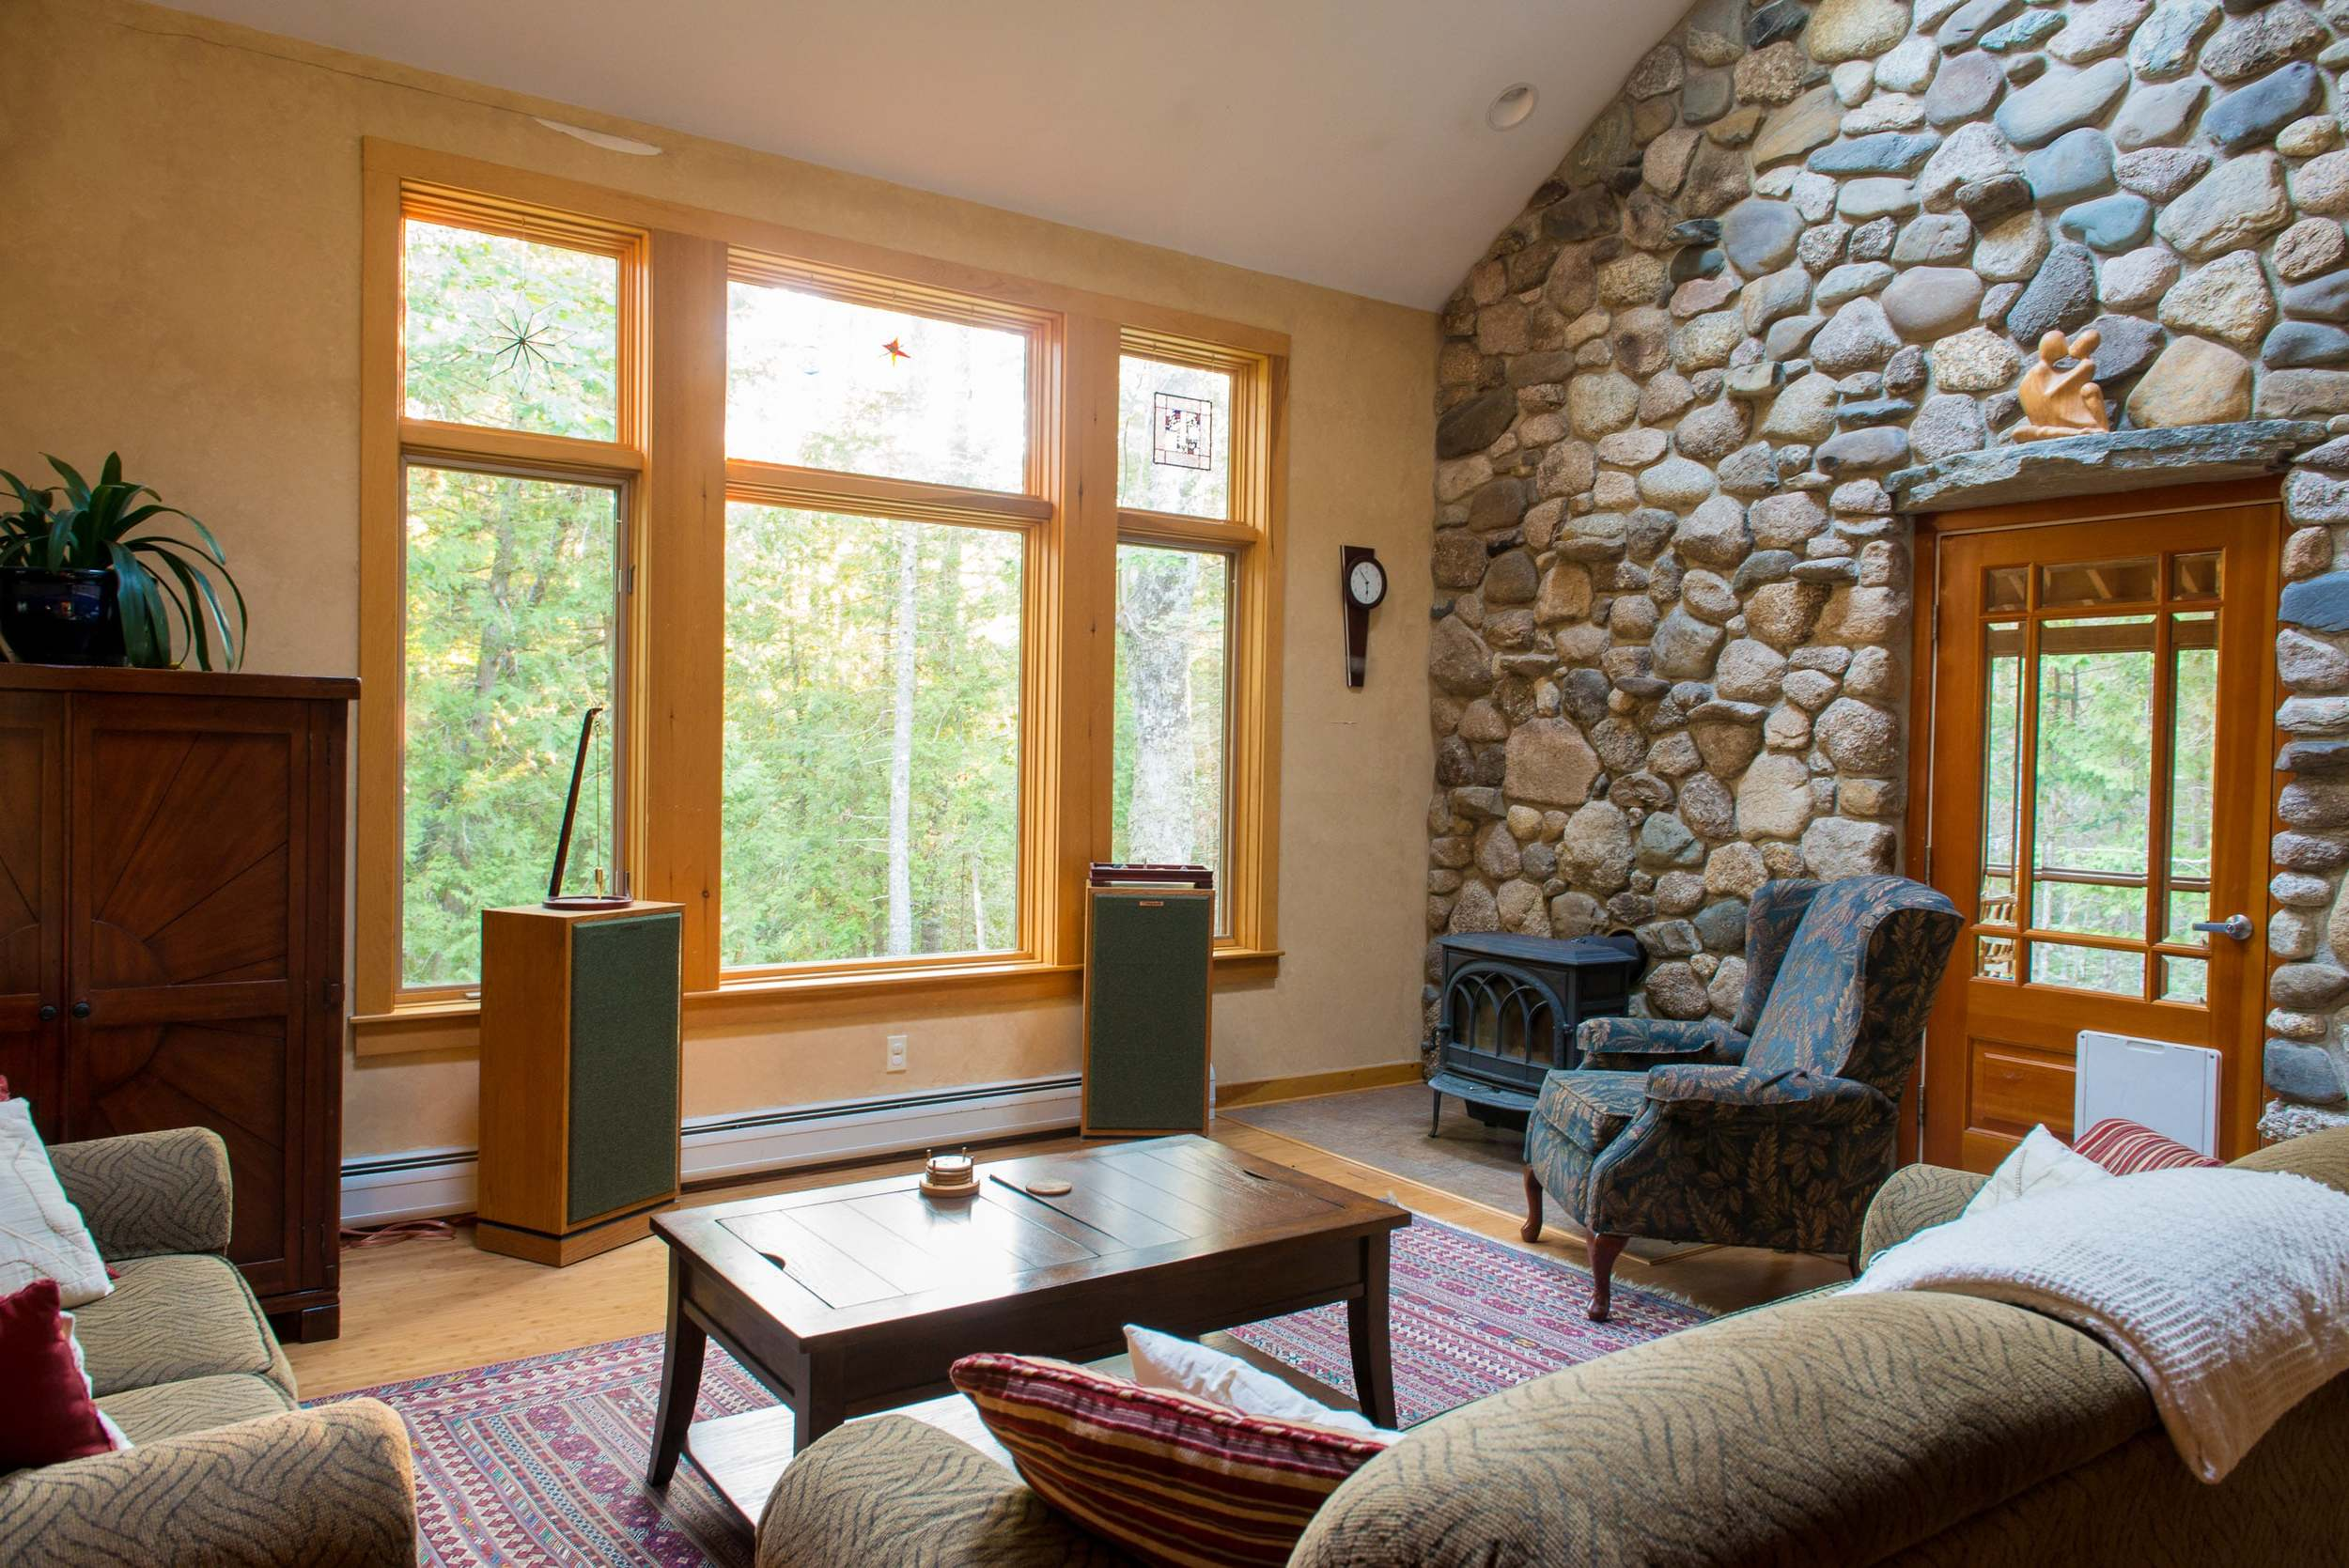 Living room with ample seating, two story native stone wall and porch door.